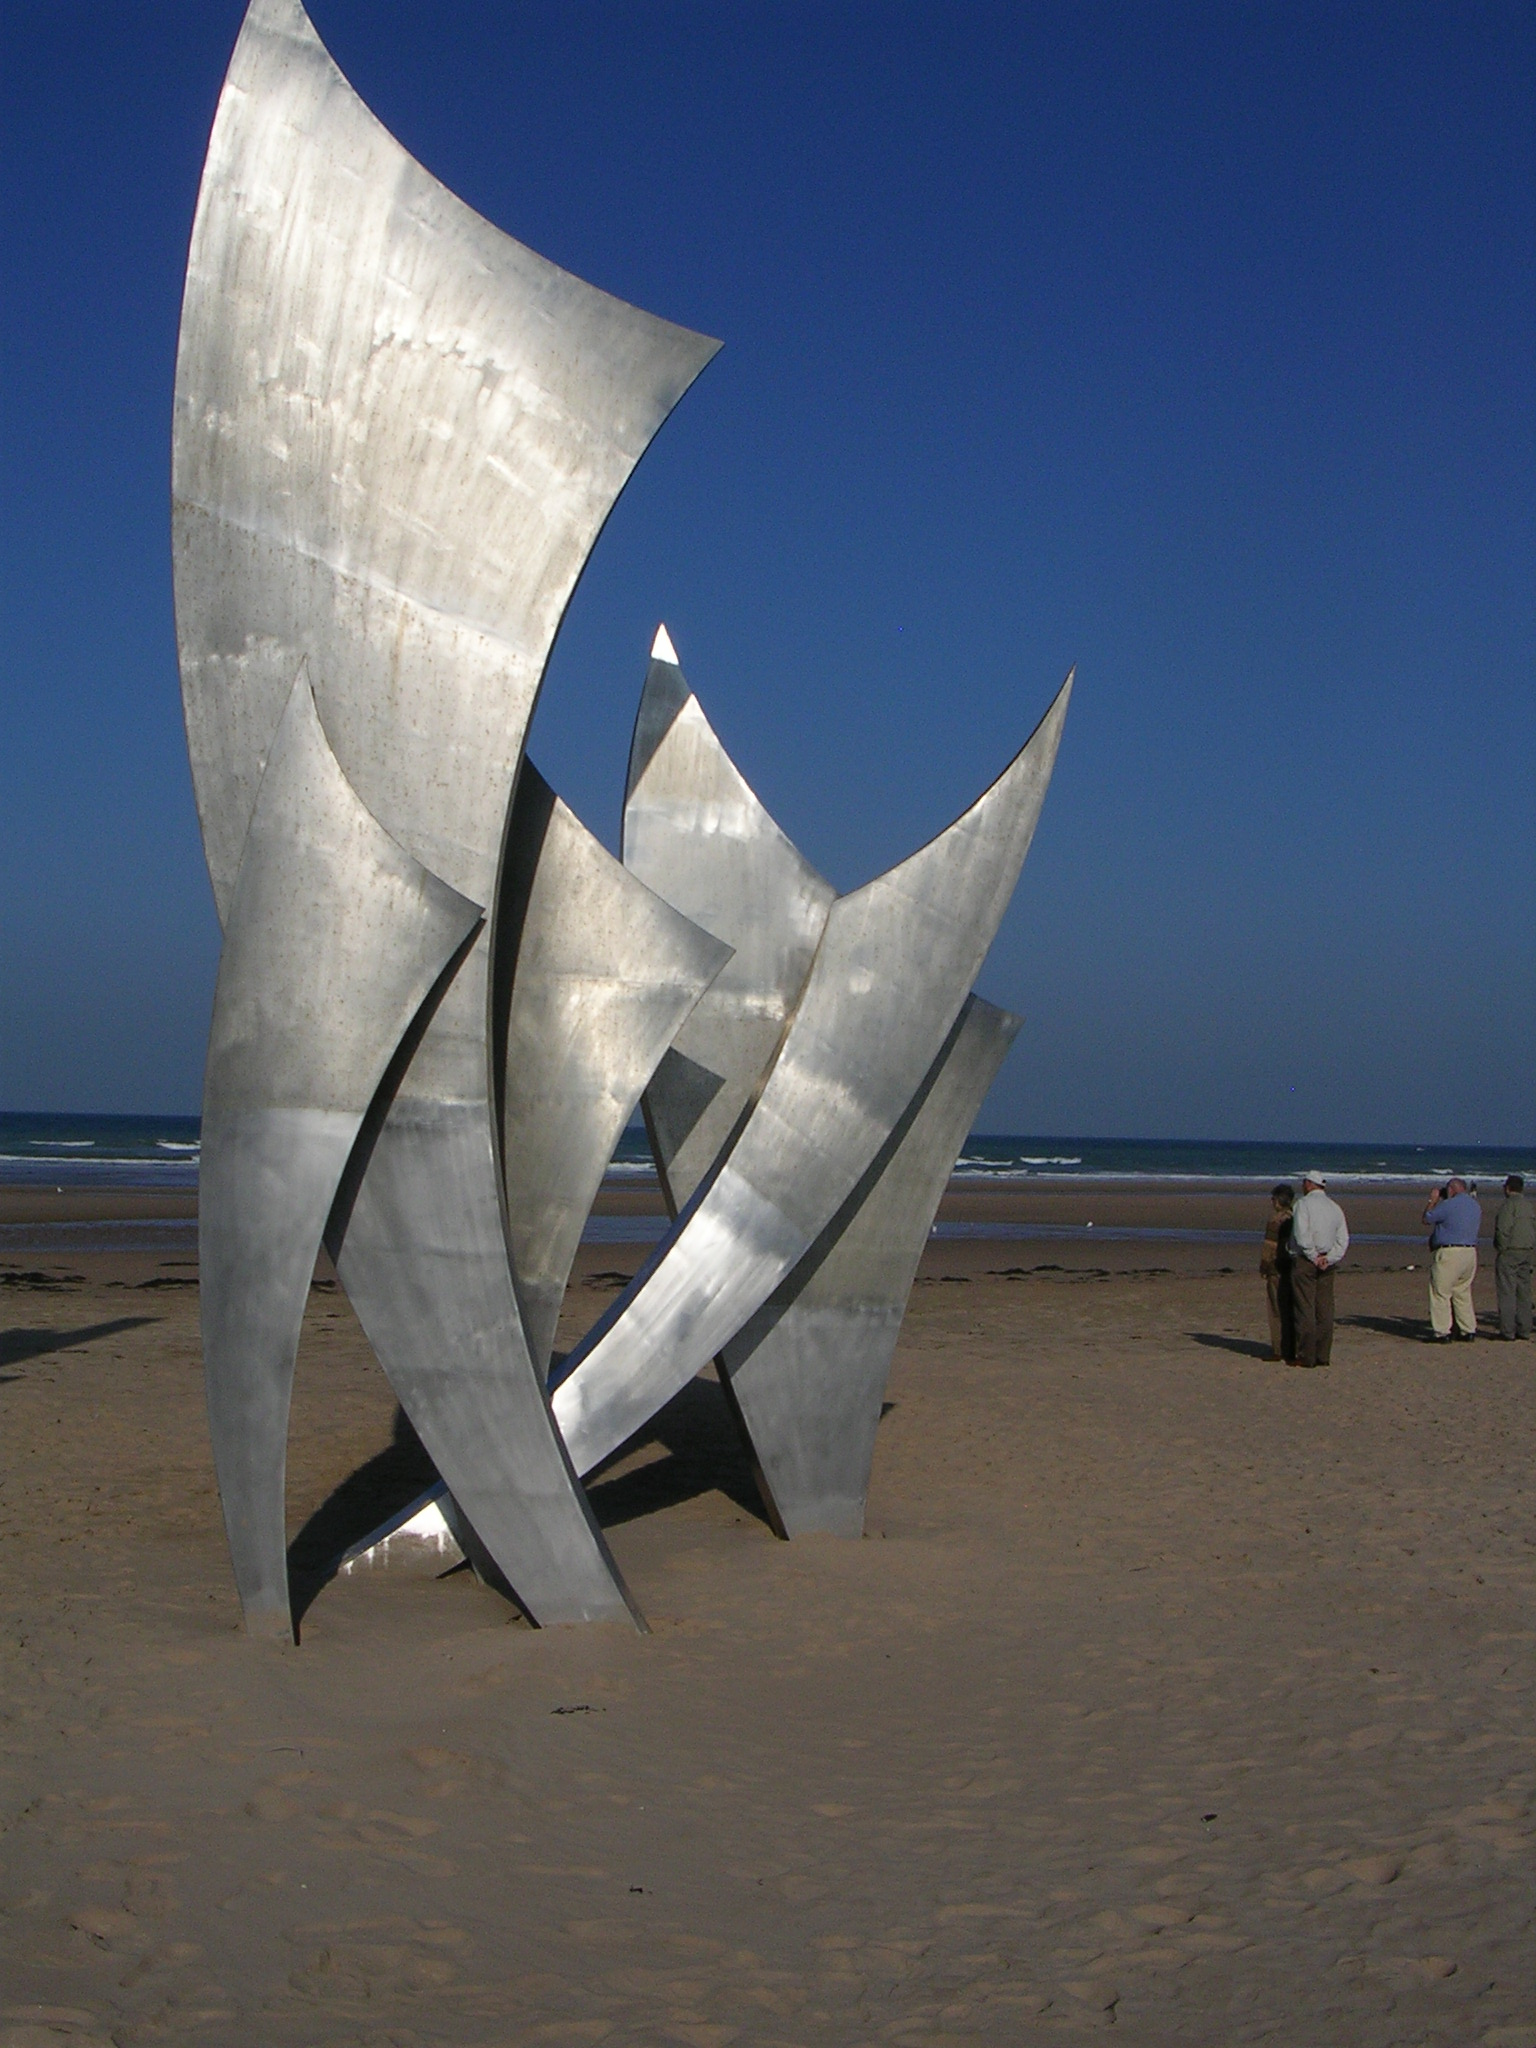 Sculpture on Normandy Beach honoring the dead